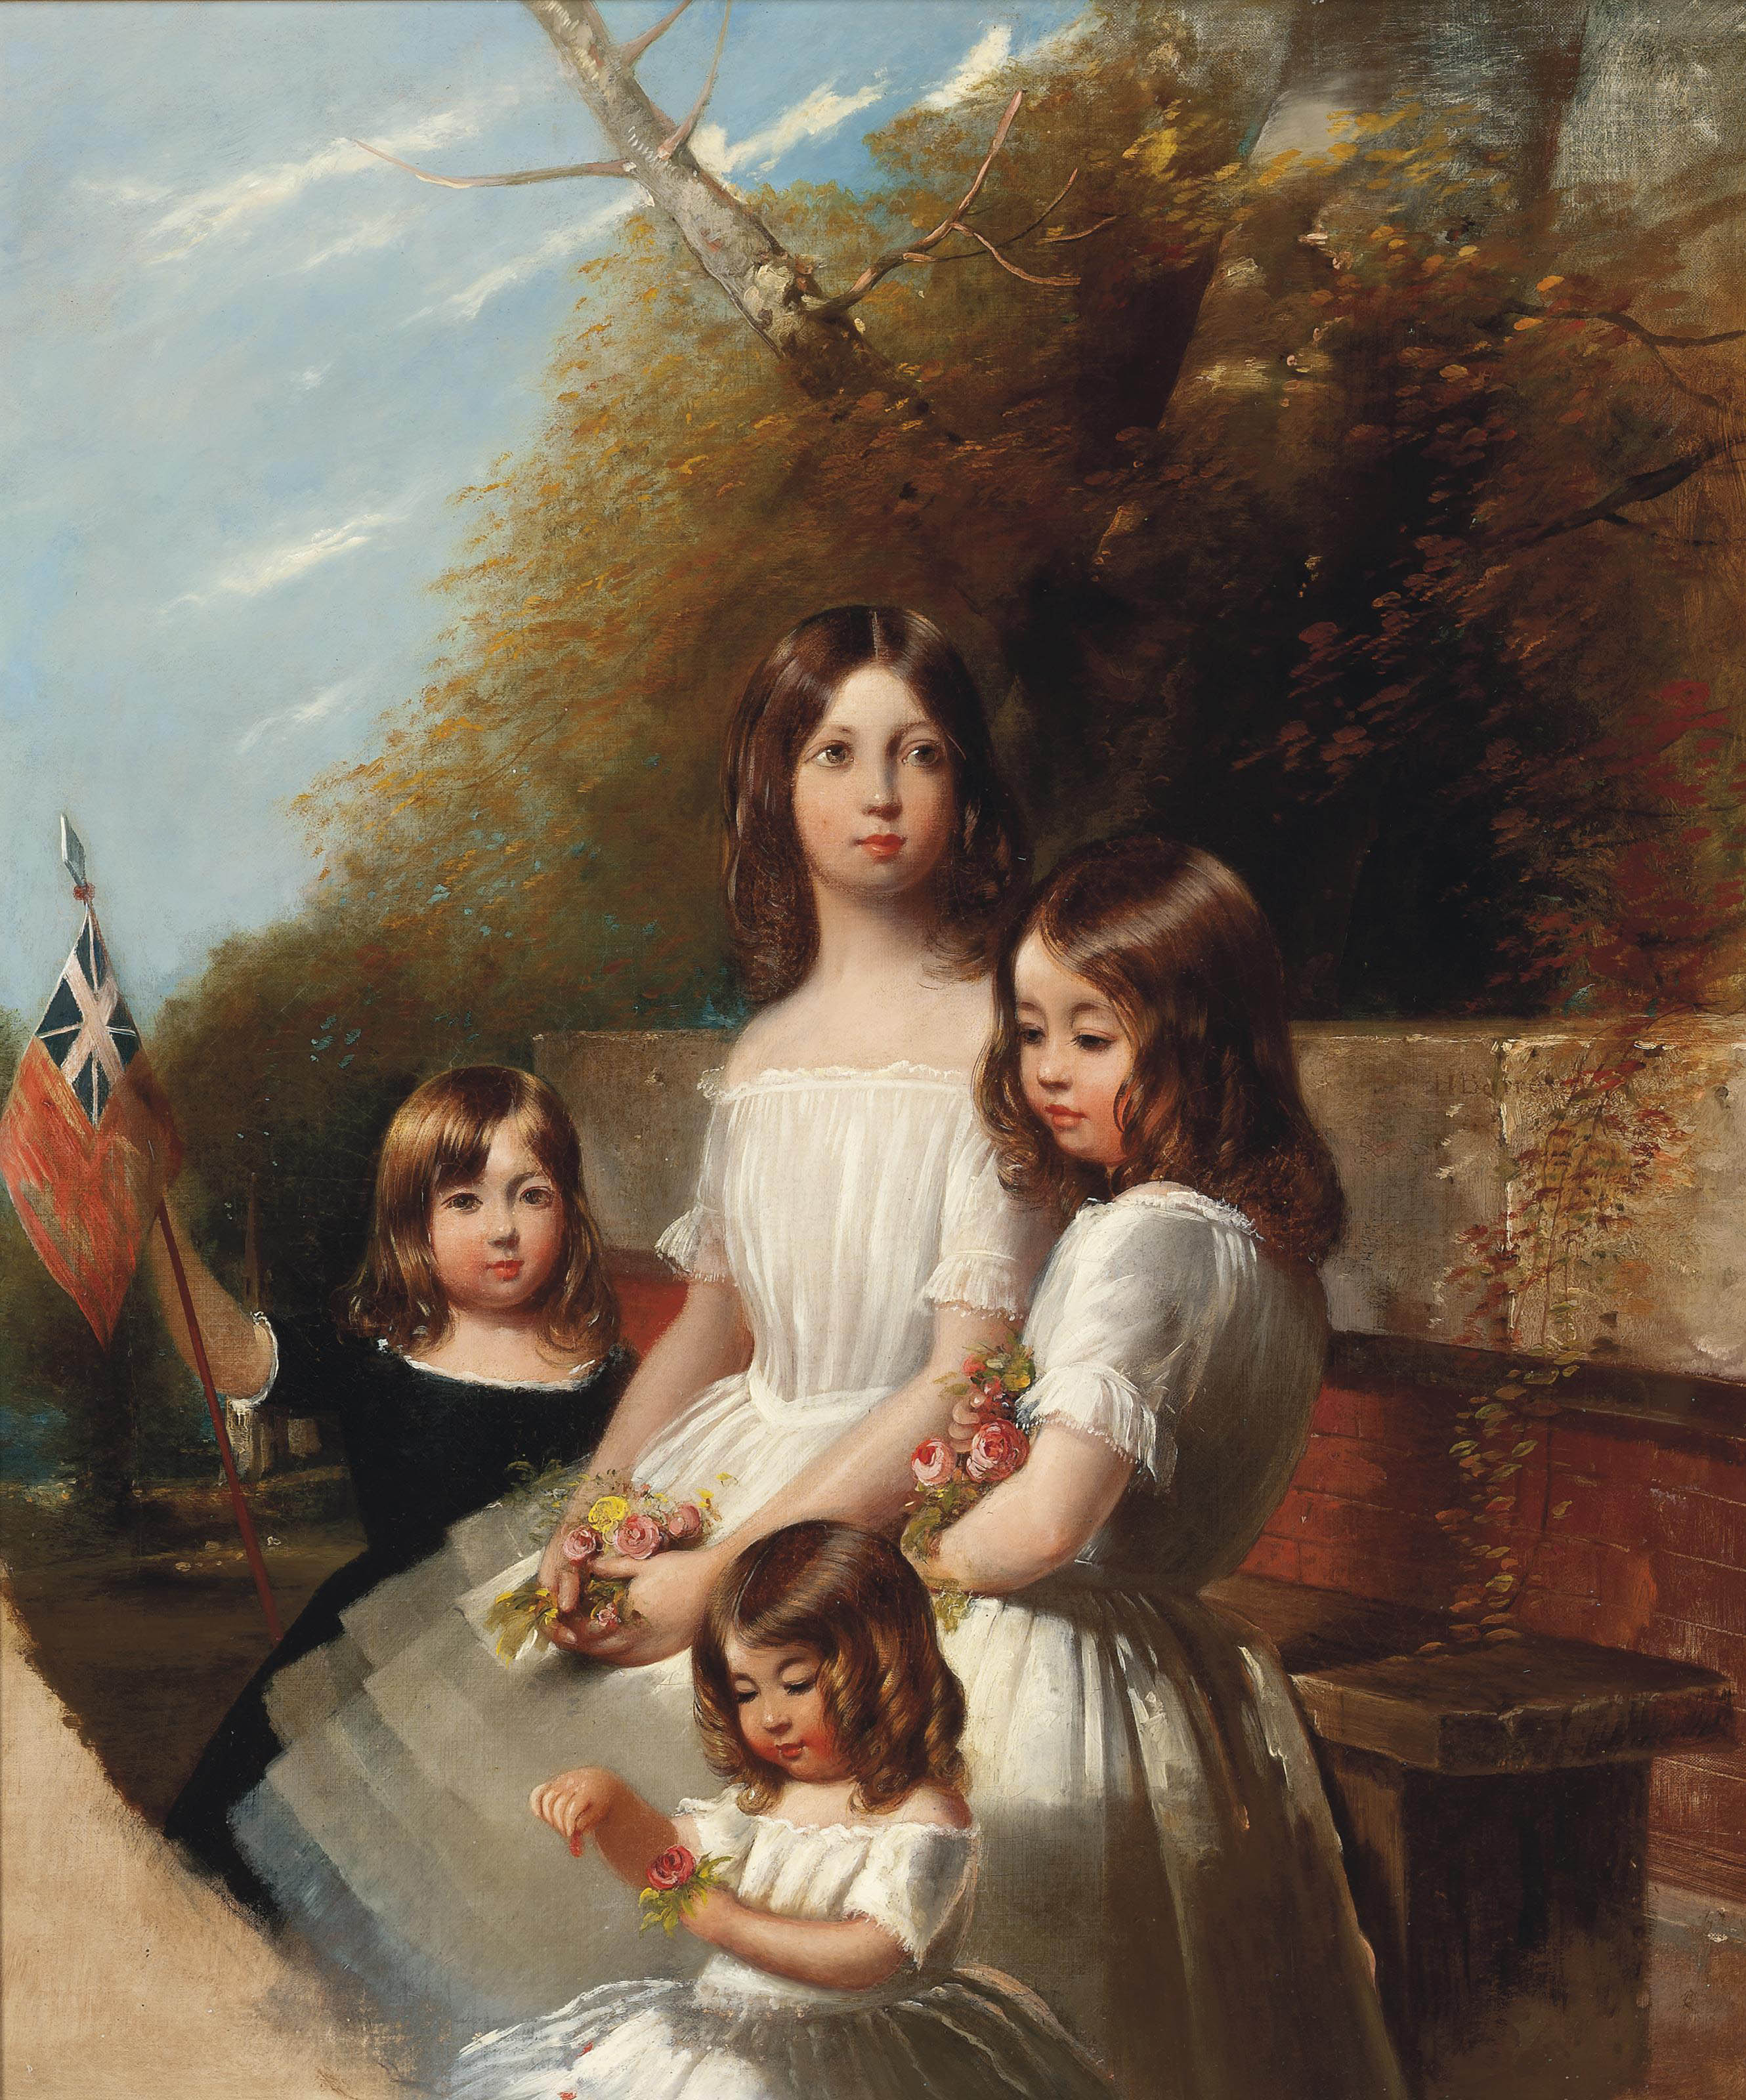 Group portrait of four children in a landscape, holding flowers and a flag